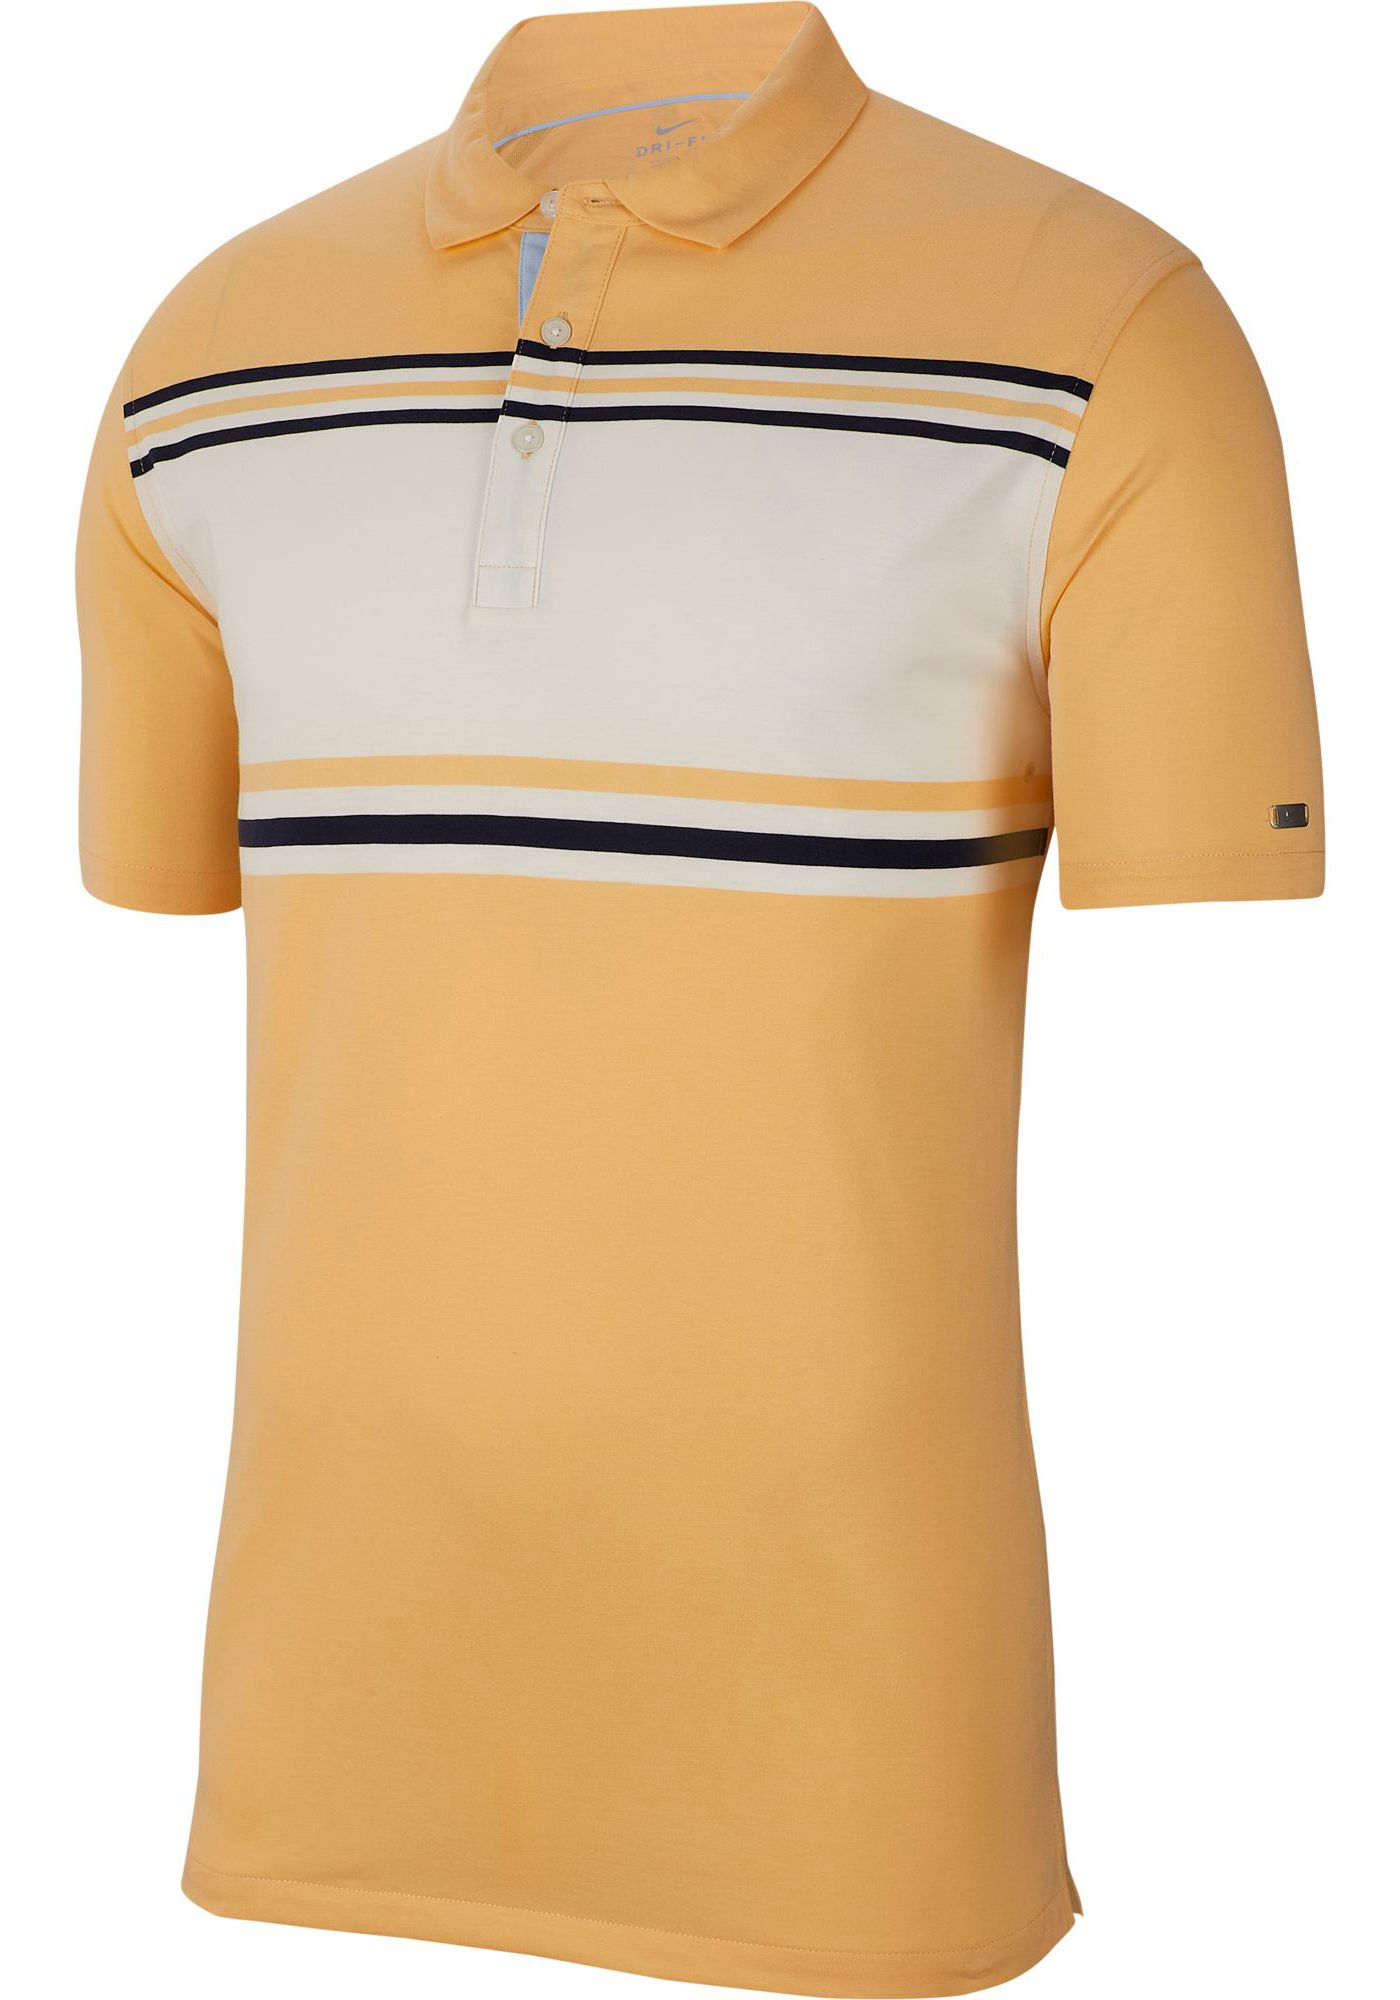 Nike Men's Dri-FIT Player Striped Golf Polo